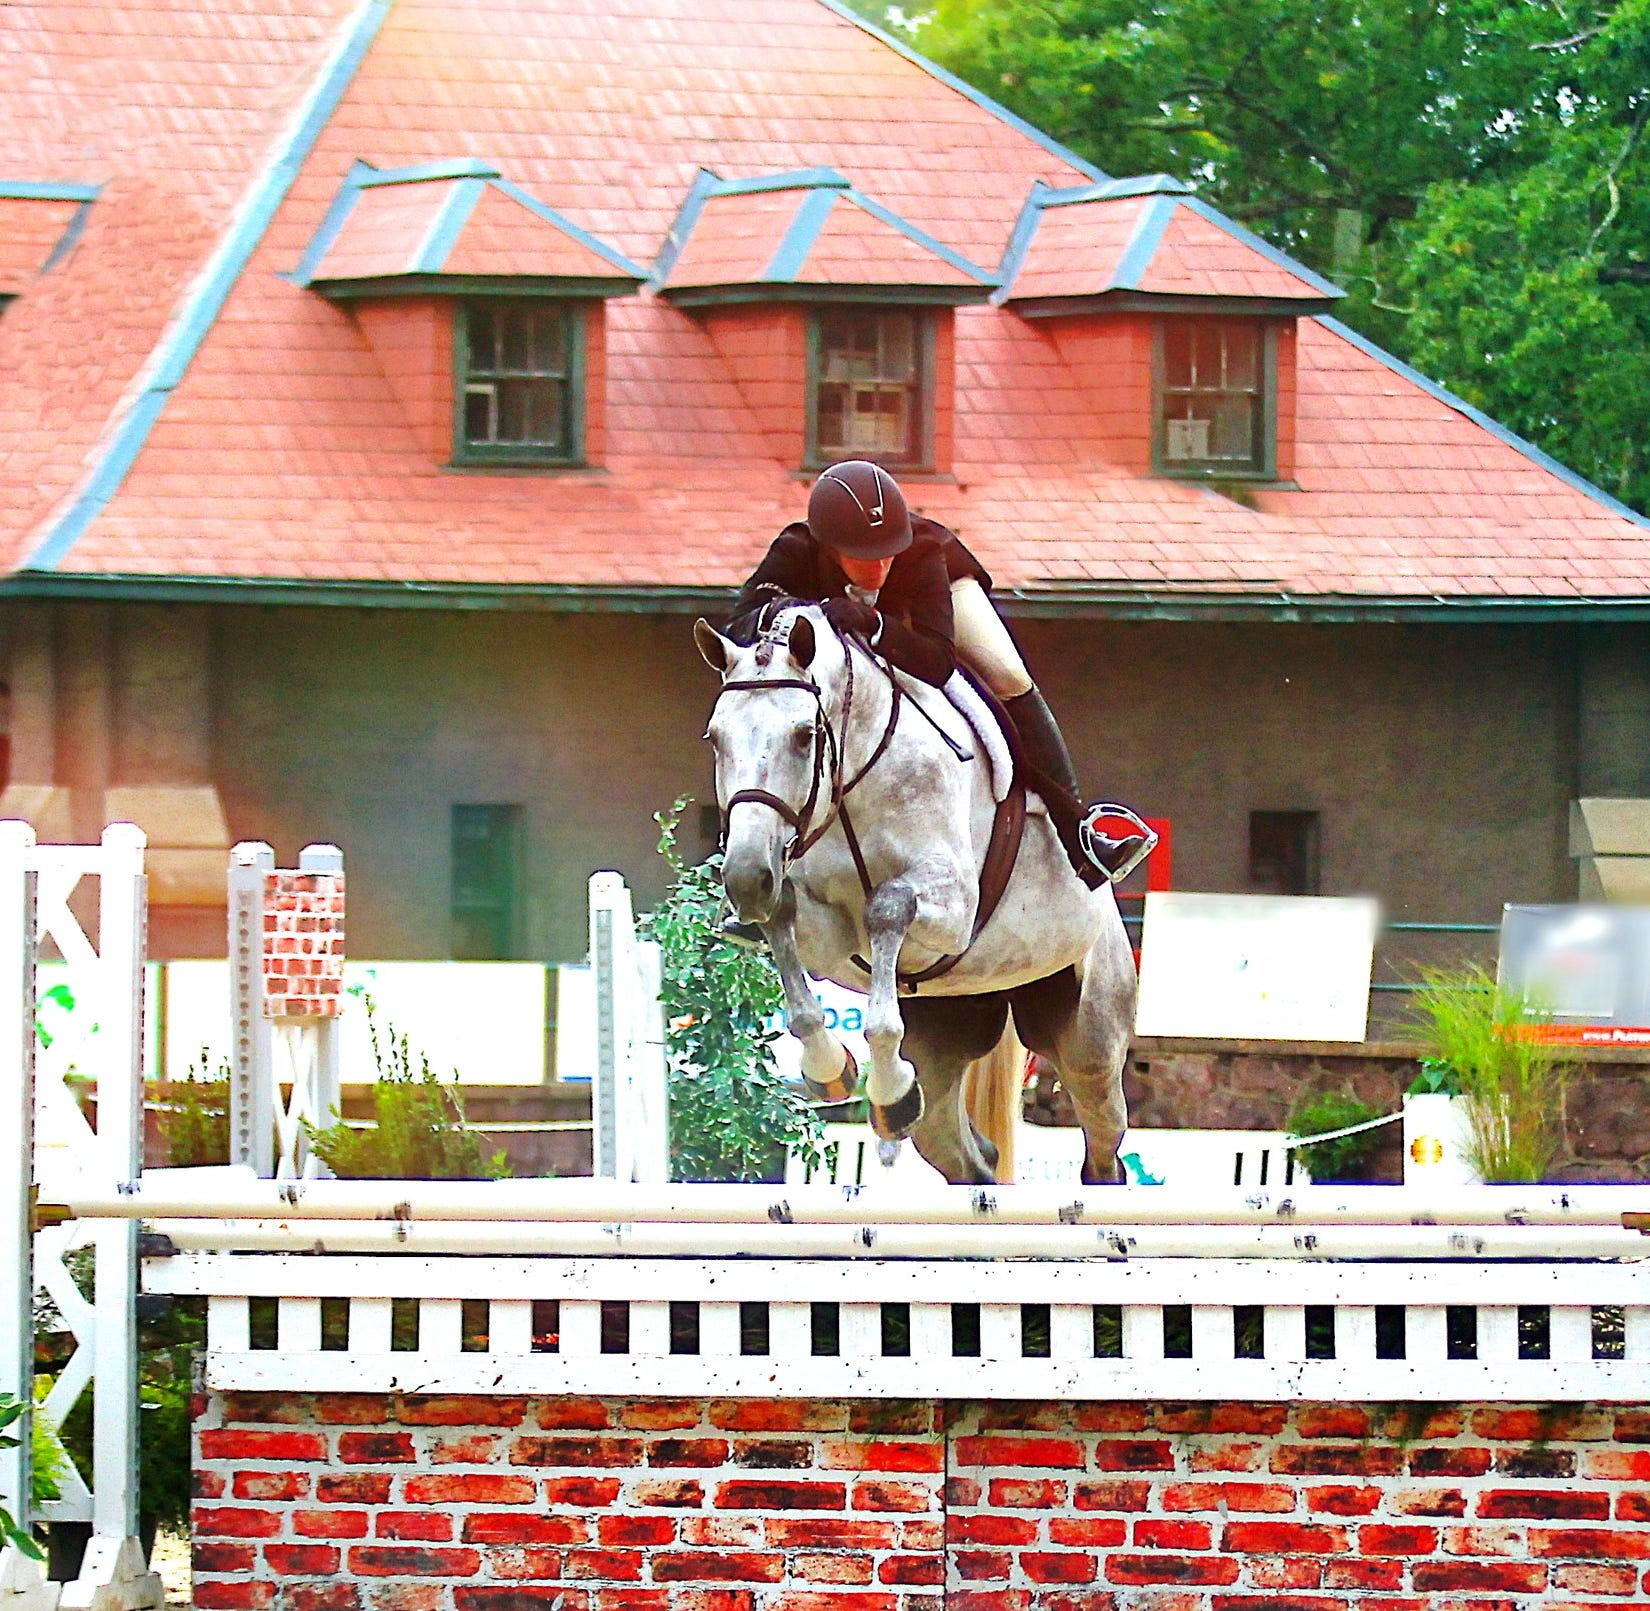 Equestrian events coming to Somerset County